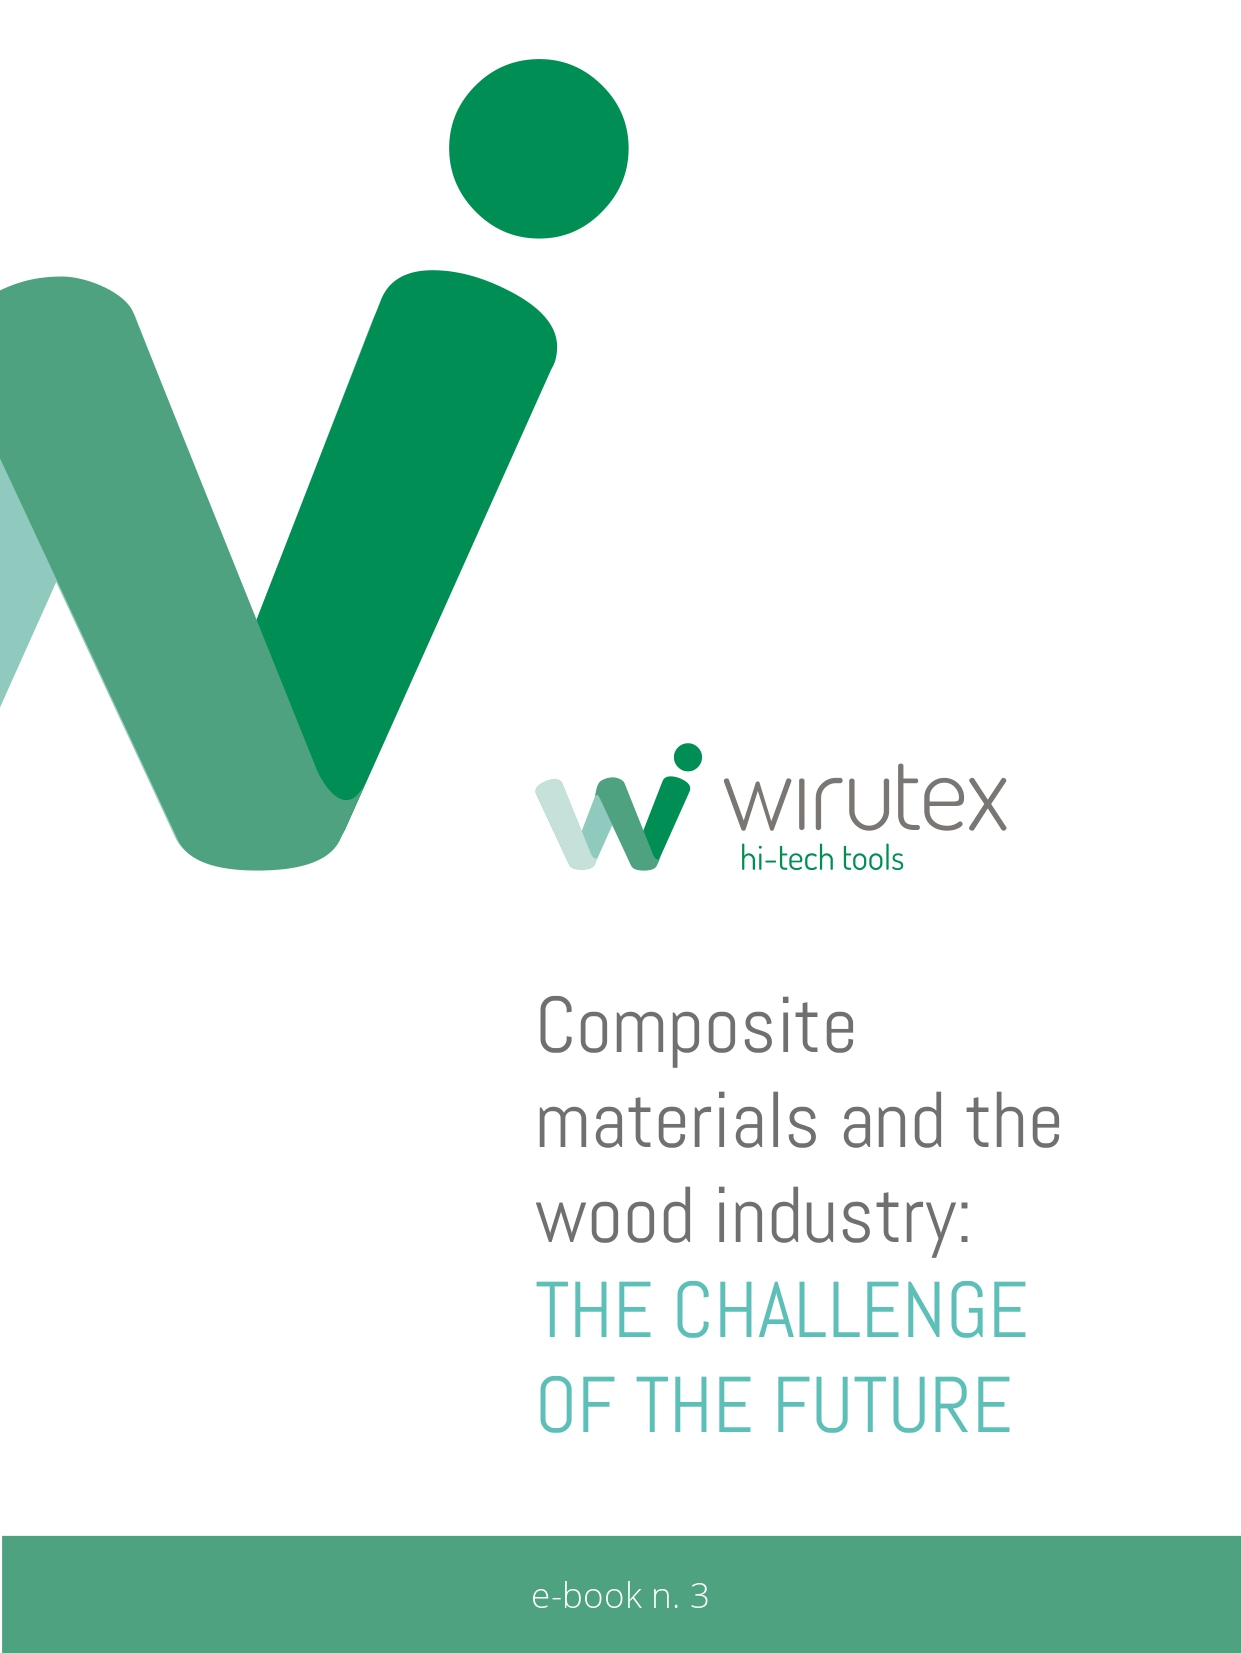 wirutex-book3-Guida-materiali-compositi-2-eng_page-0001